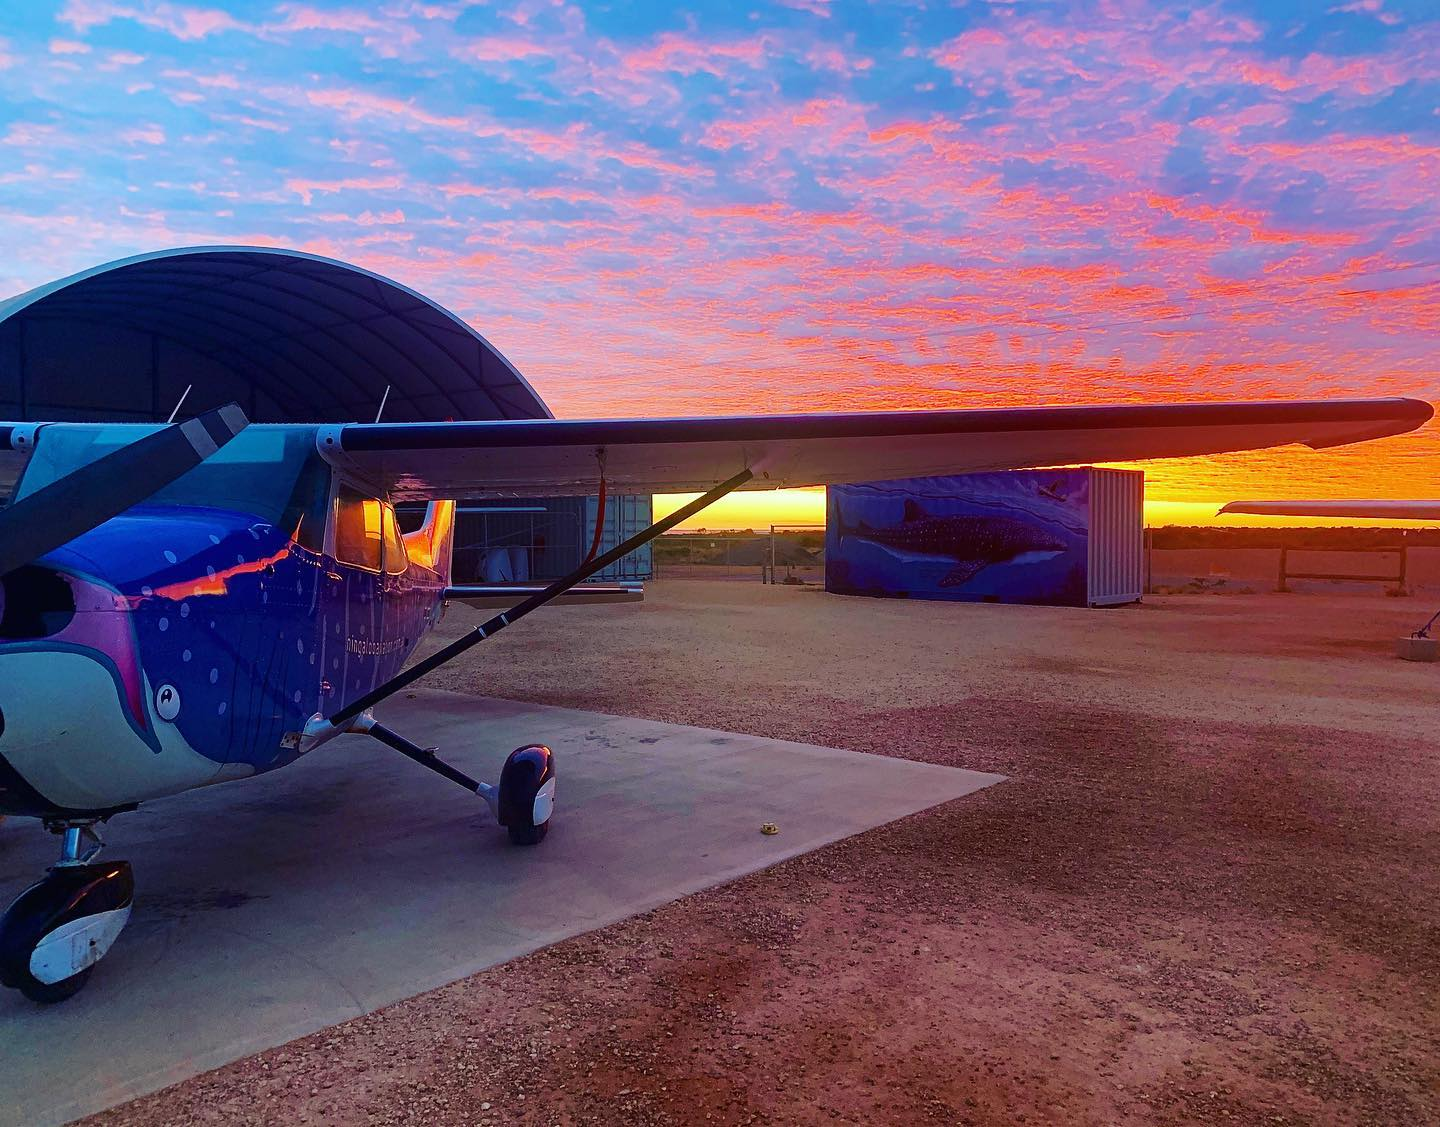 Private Sunset Ningaloo Scenic Flight, 1 Hour - Exmouth - For up to 3